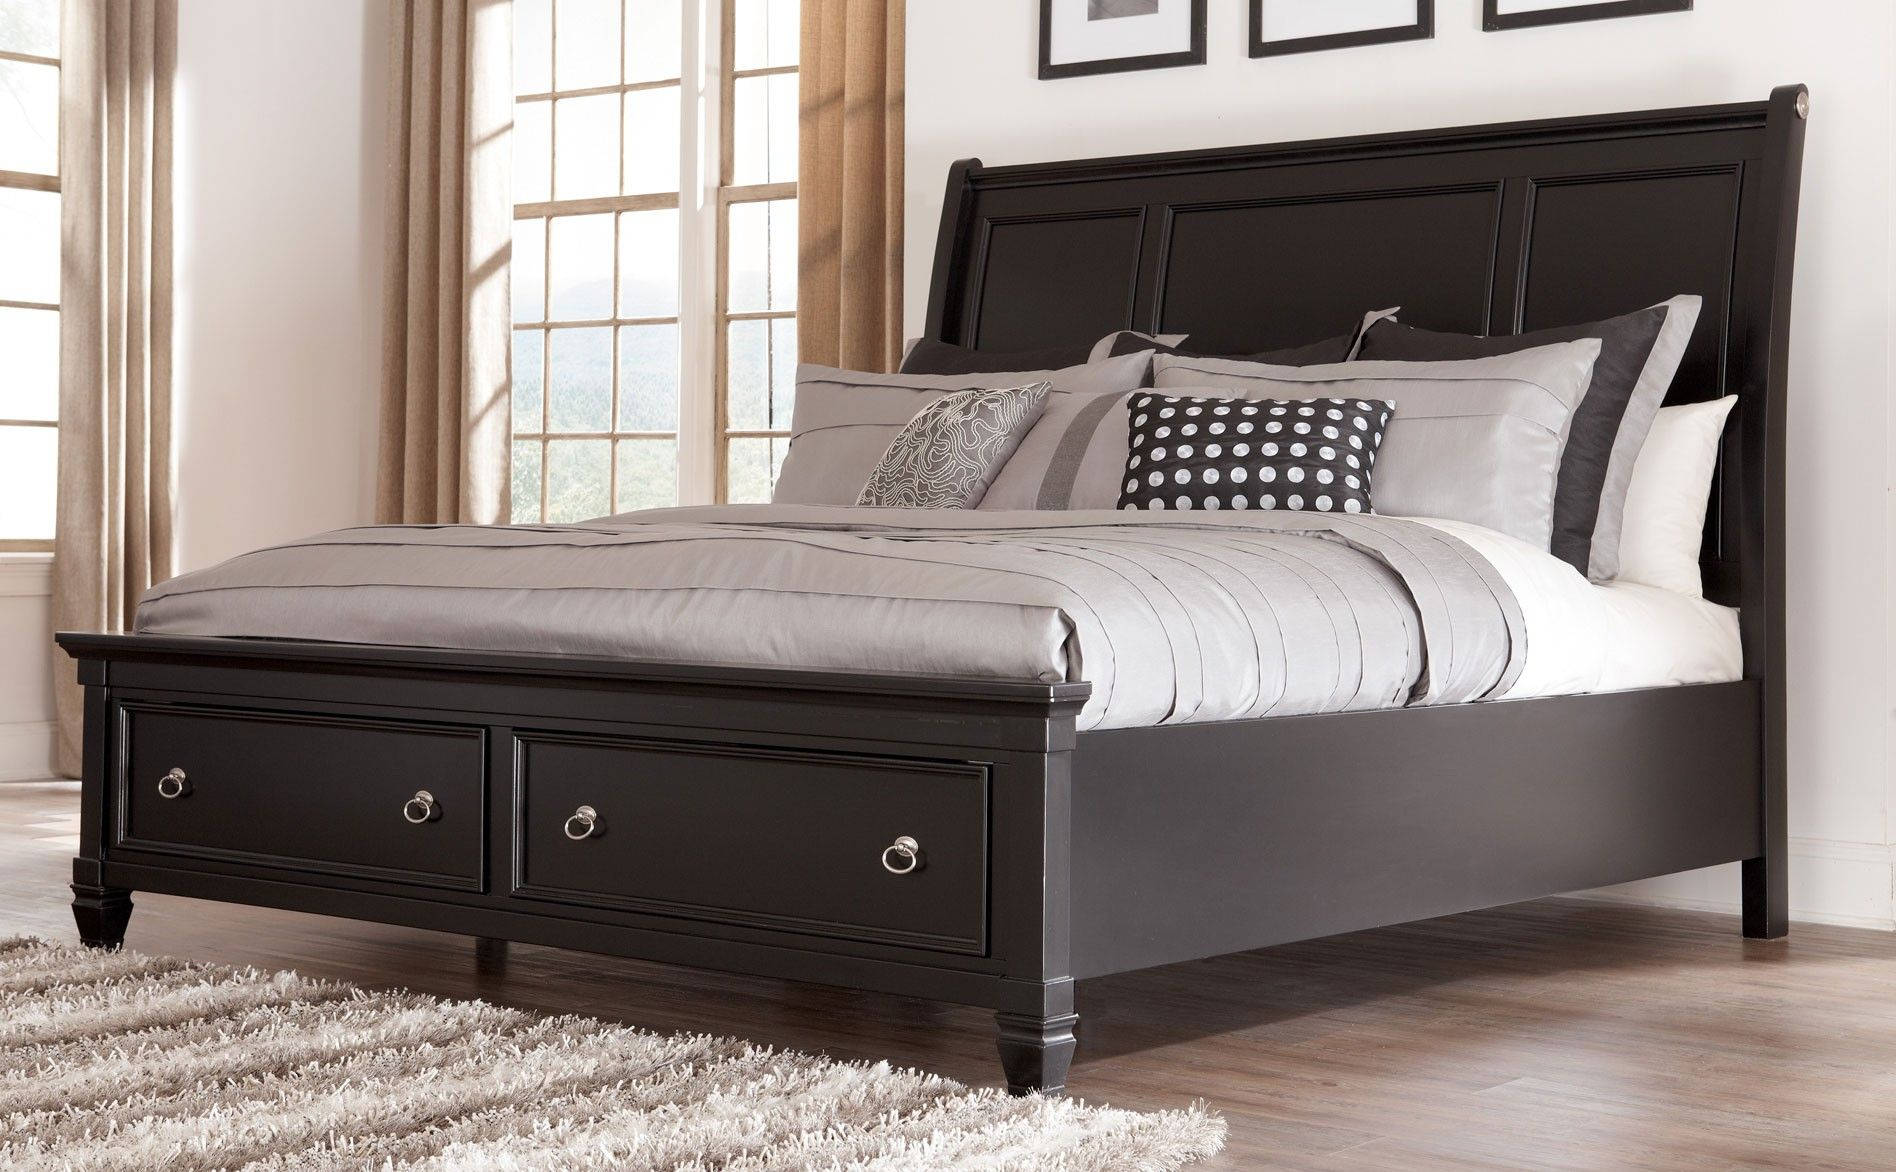 Bedroom Sets With Storage Beds ashley greensburg king sleigh bed with storage | for the home